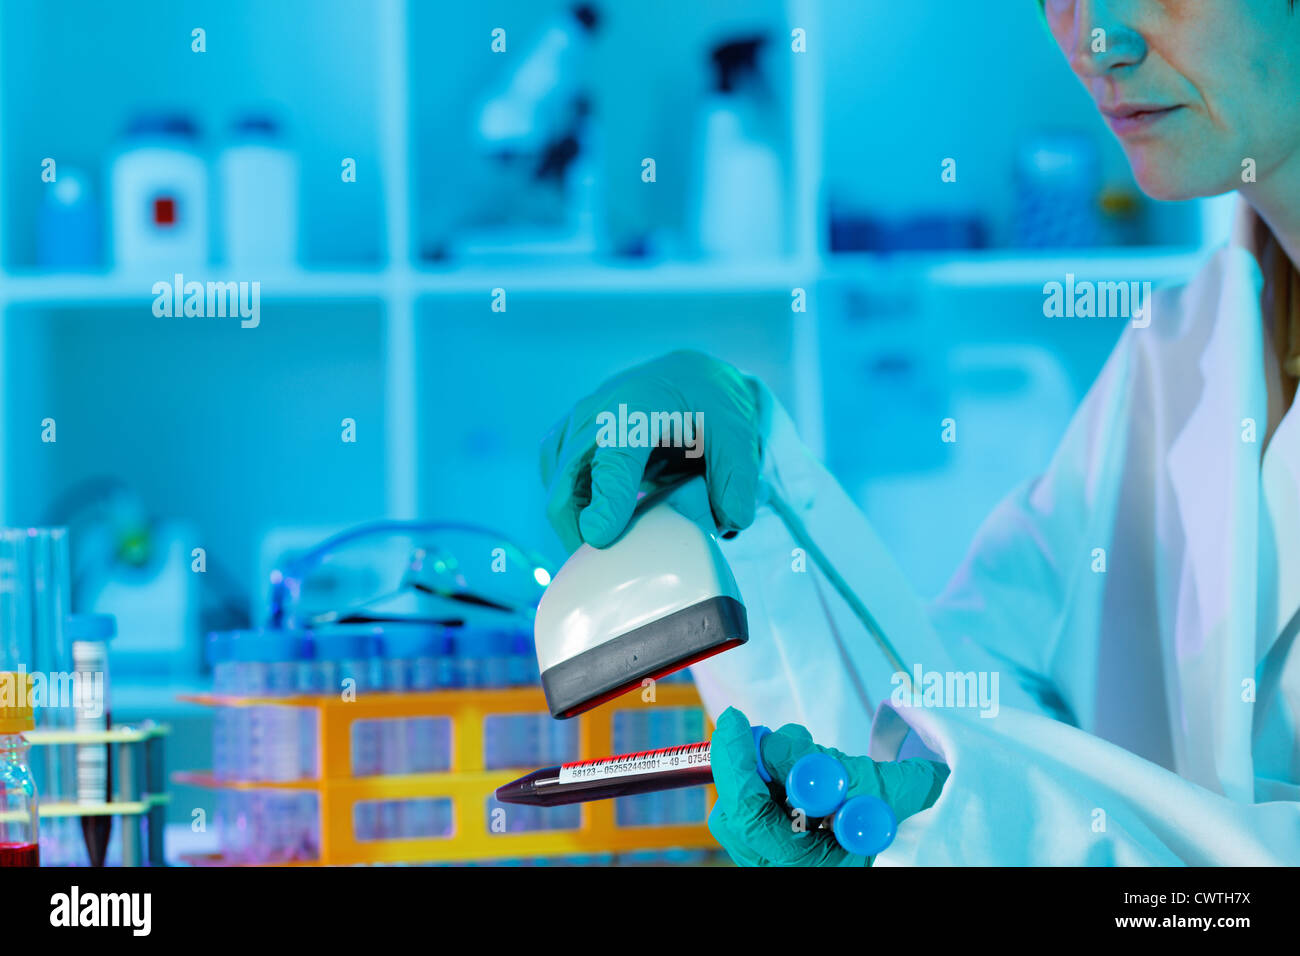 technician scans the sample tubes biological culture - Stock Image